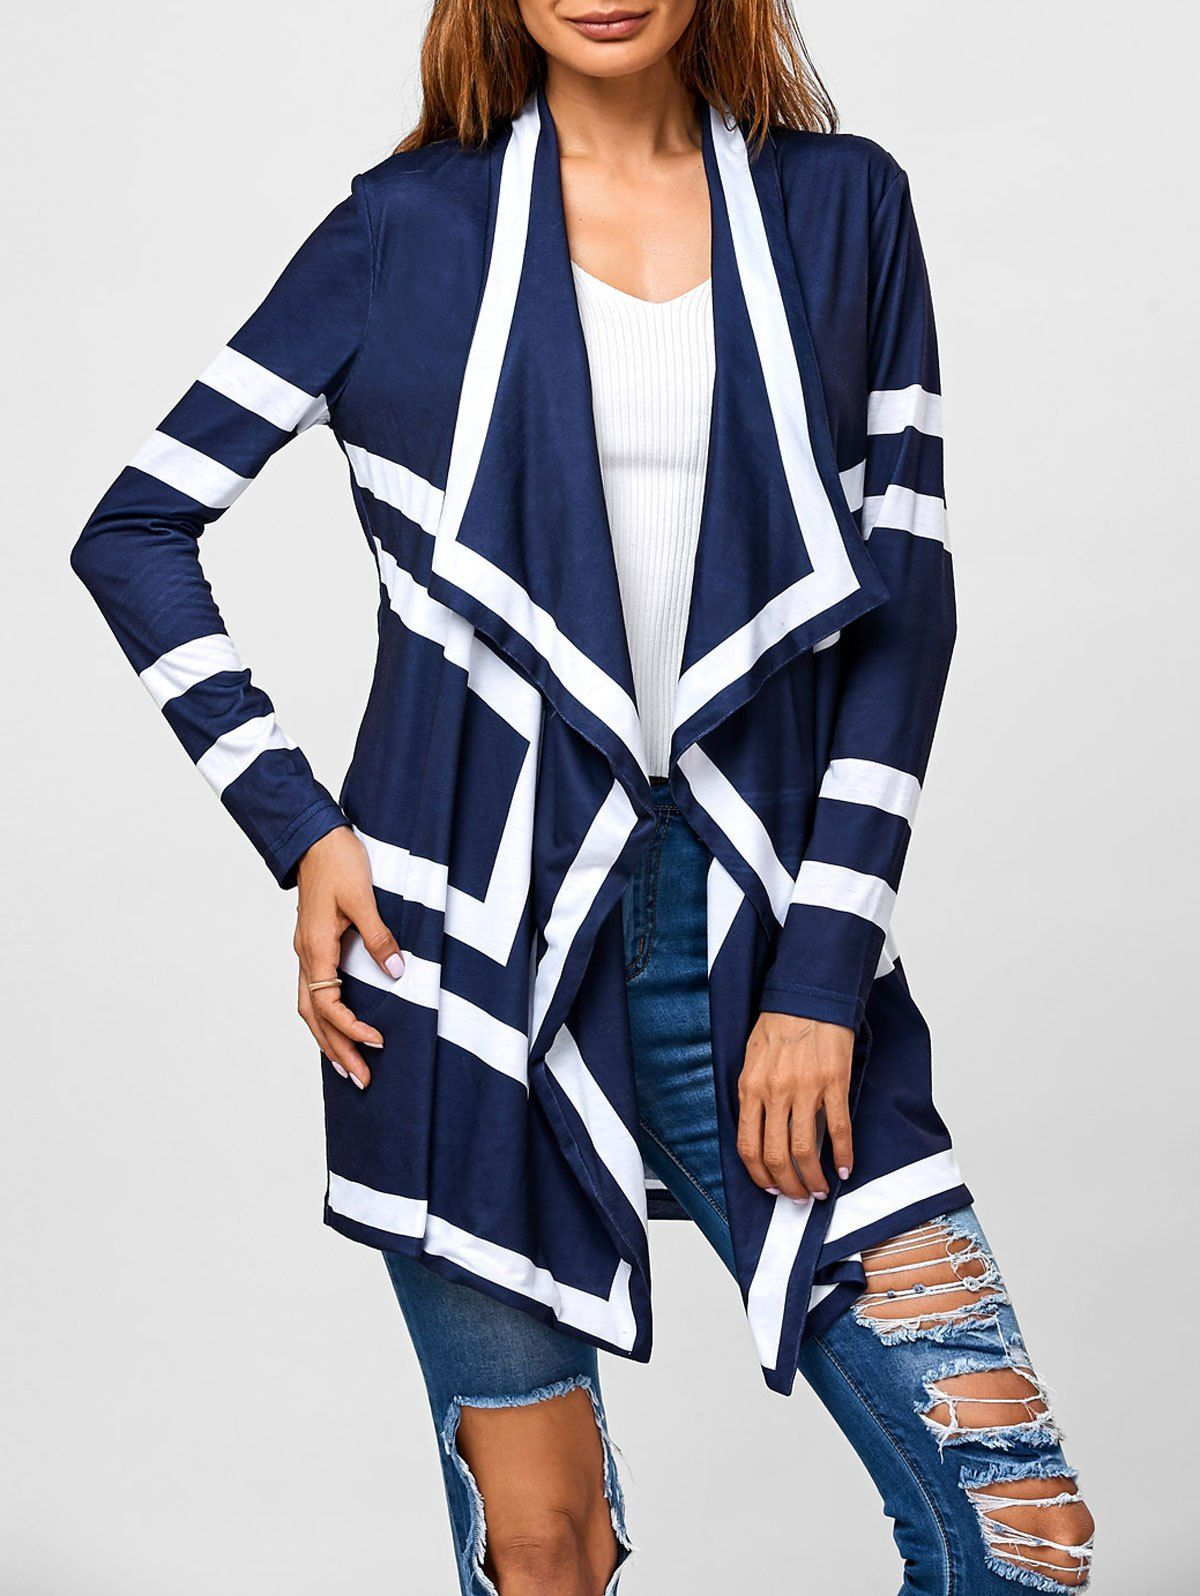 Contrast Trim Geometric Pattern Cardigan in Blue And White ...